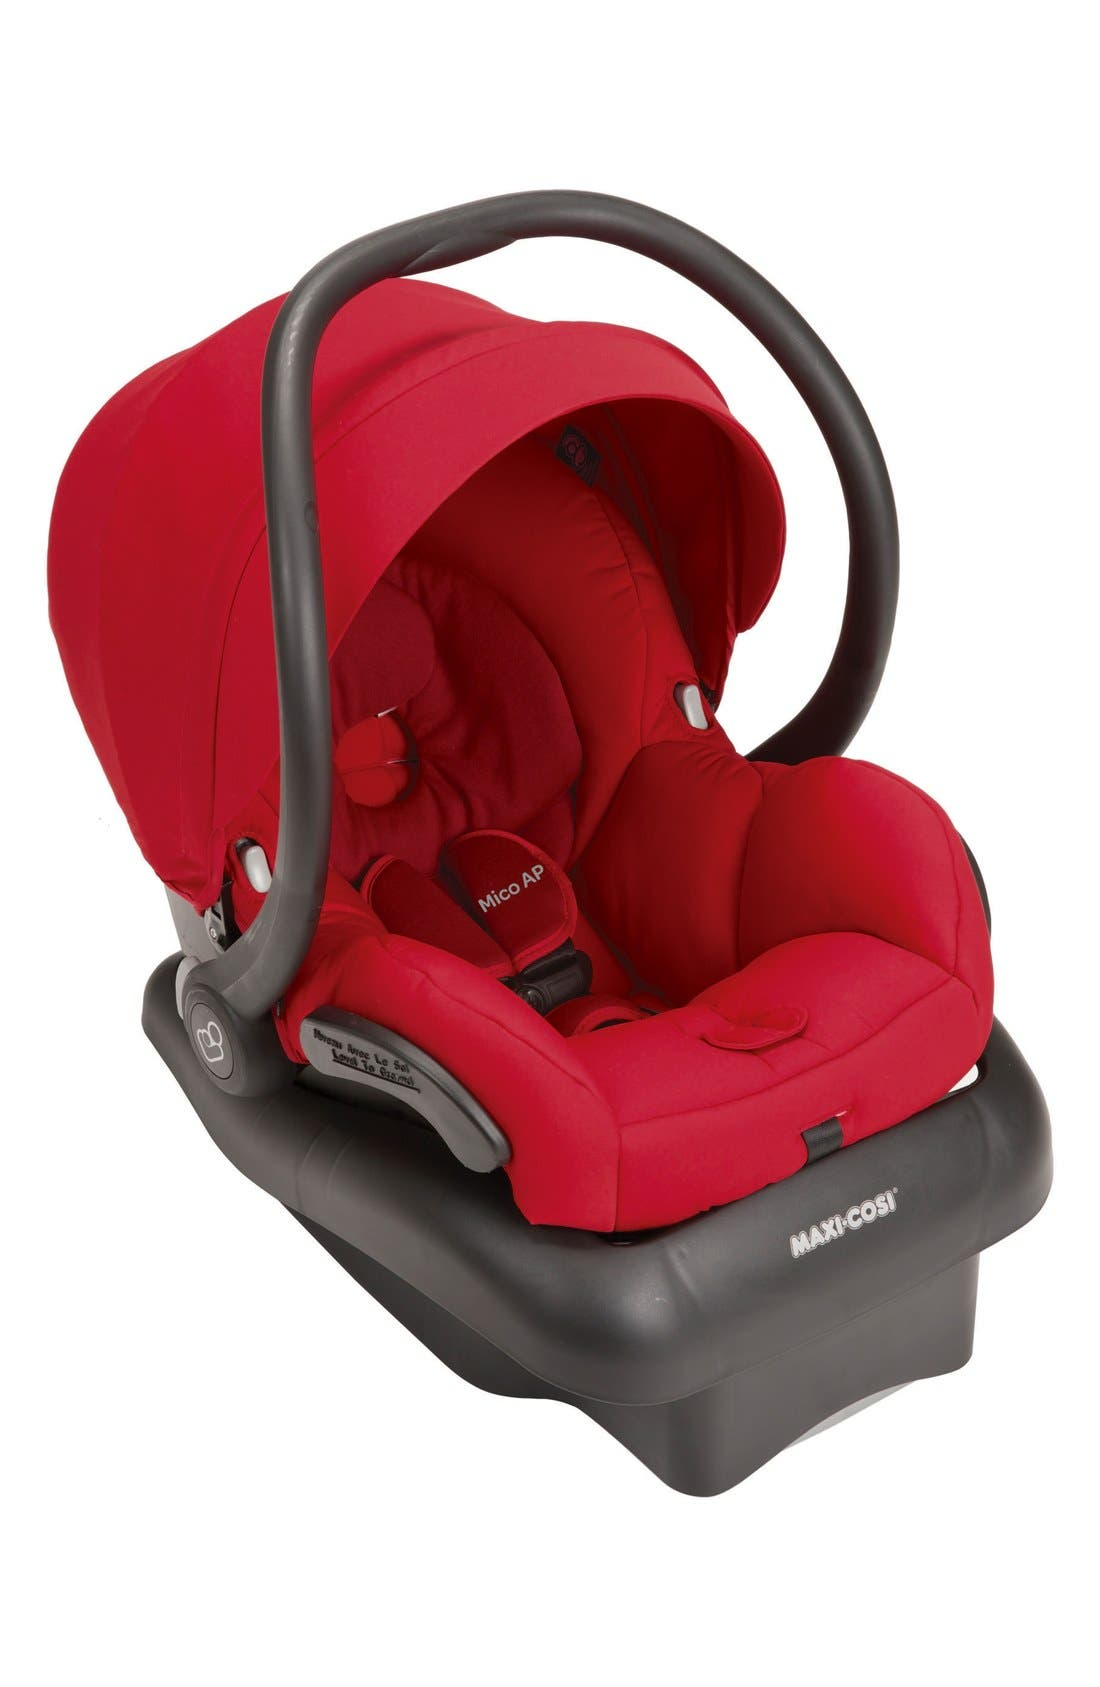 Maxi-Cosi® 'Mico AP' Infant Car Seat